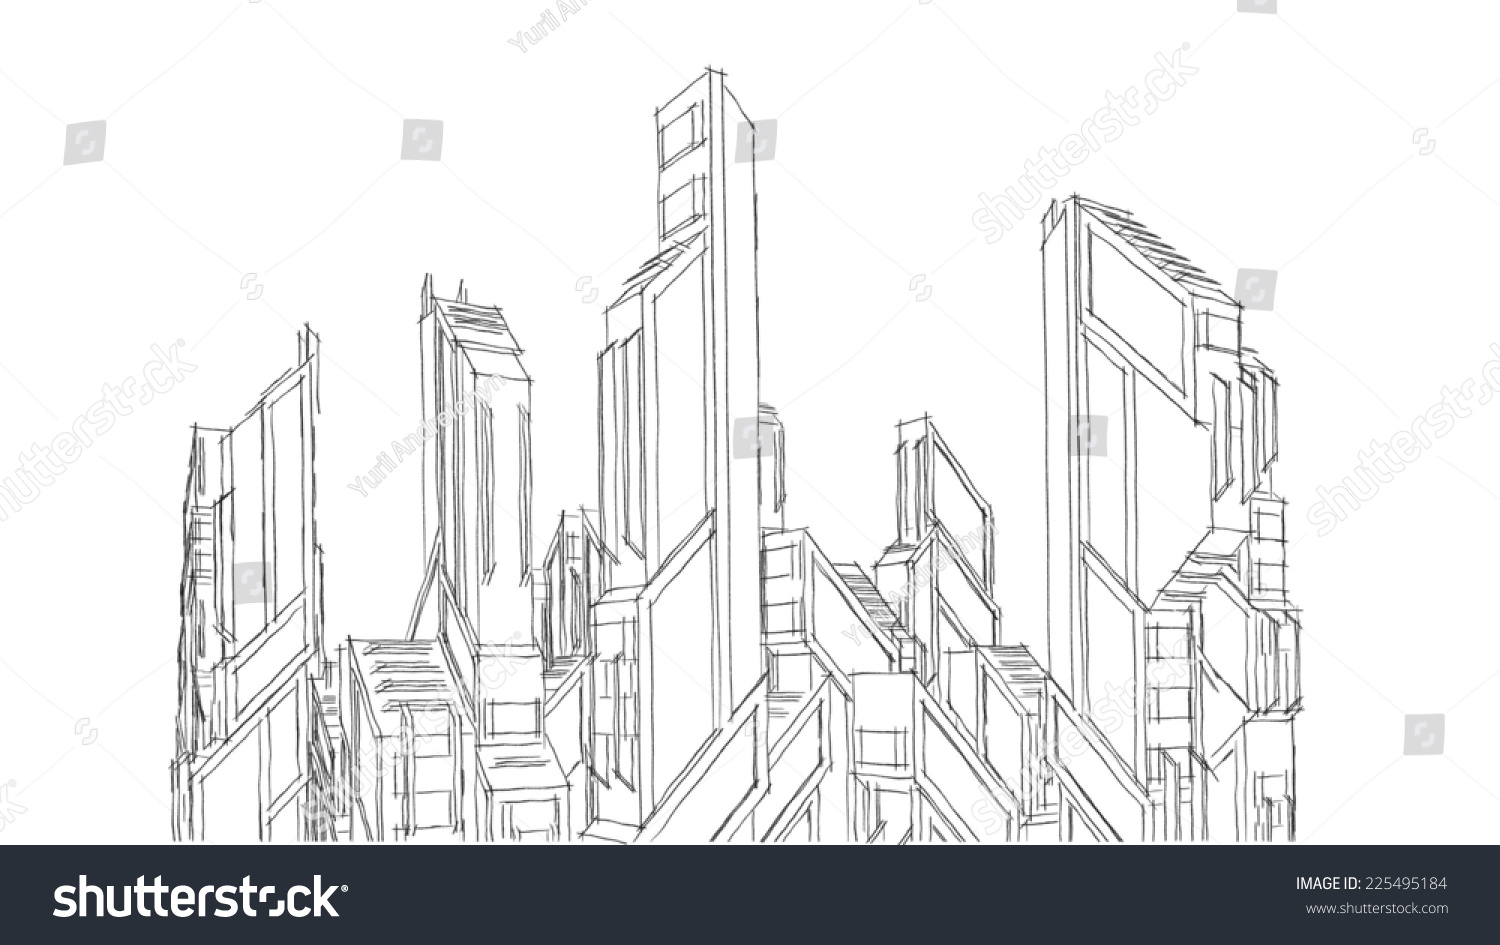 Futuristic Buildings Sketch Stock Illustration 225495184